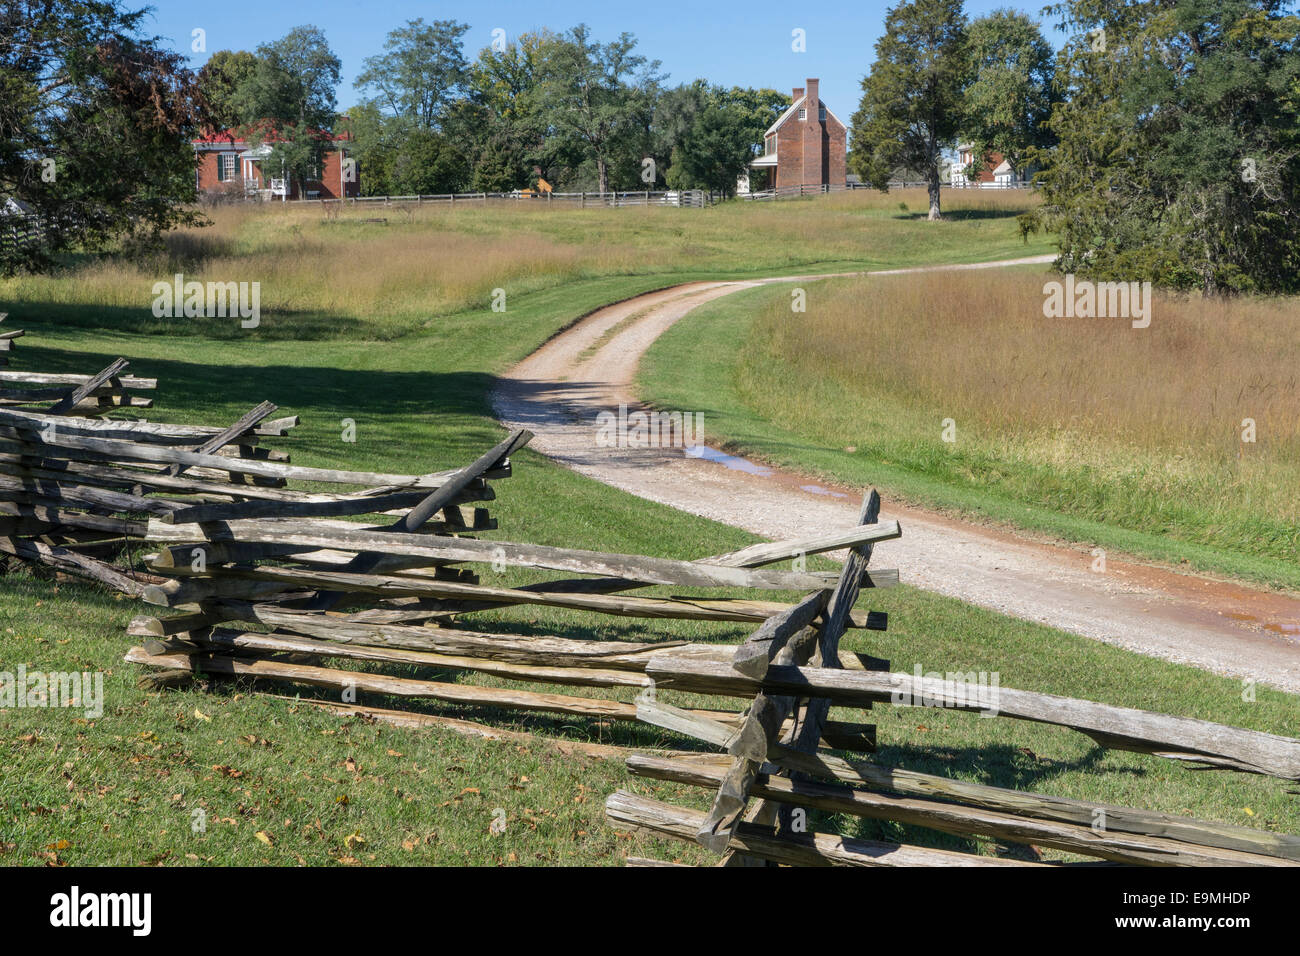 United States, Virginia, Appomattox County, Appomattox Court House, National Historical Park,Site of the end of - Stock Image